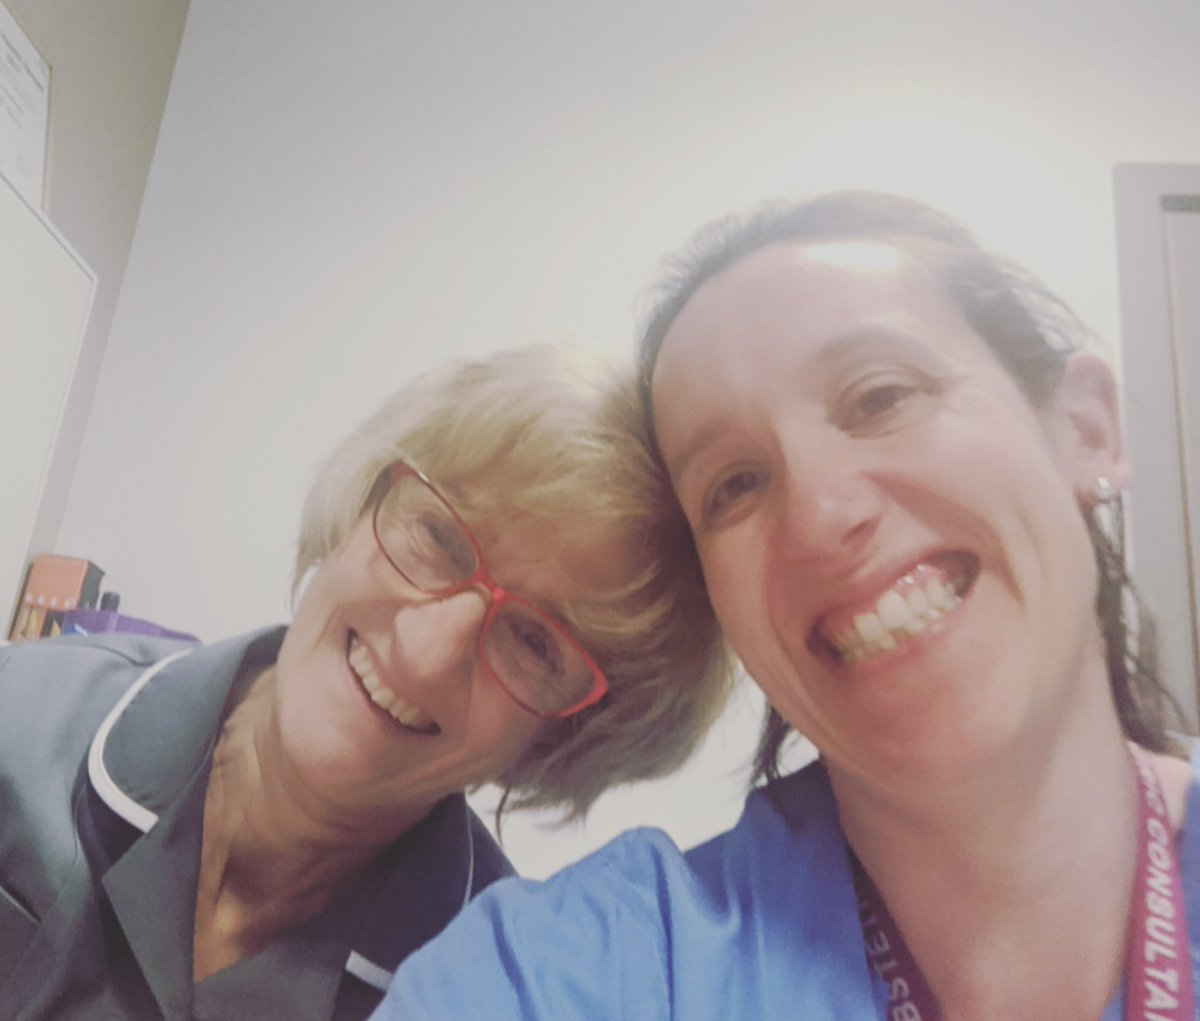 This photo with @aliherronalihe1 sums up how lucky and proud I am to have worked with, and learnt from, amazing midwives, @NHSBartsHealth and beyond. I will also be forever grateful for the fantastic midwifery care I received during my own 3 pregnancies. Happy #IDM2020 https://t.co/Z8UBOY1yhn